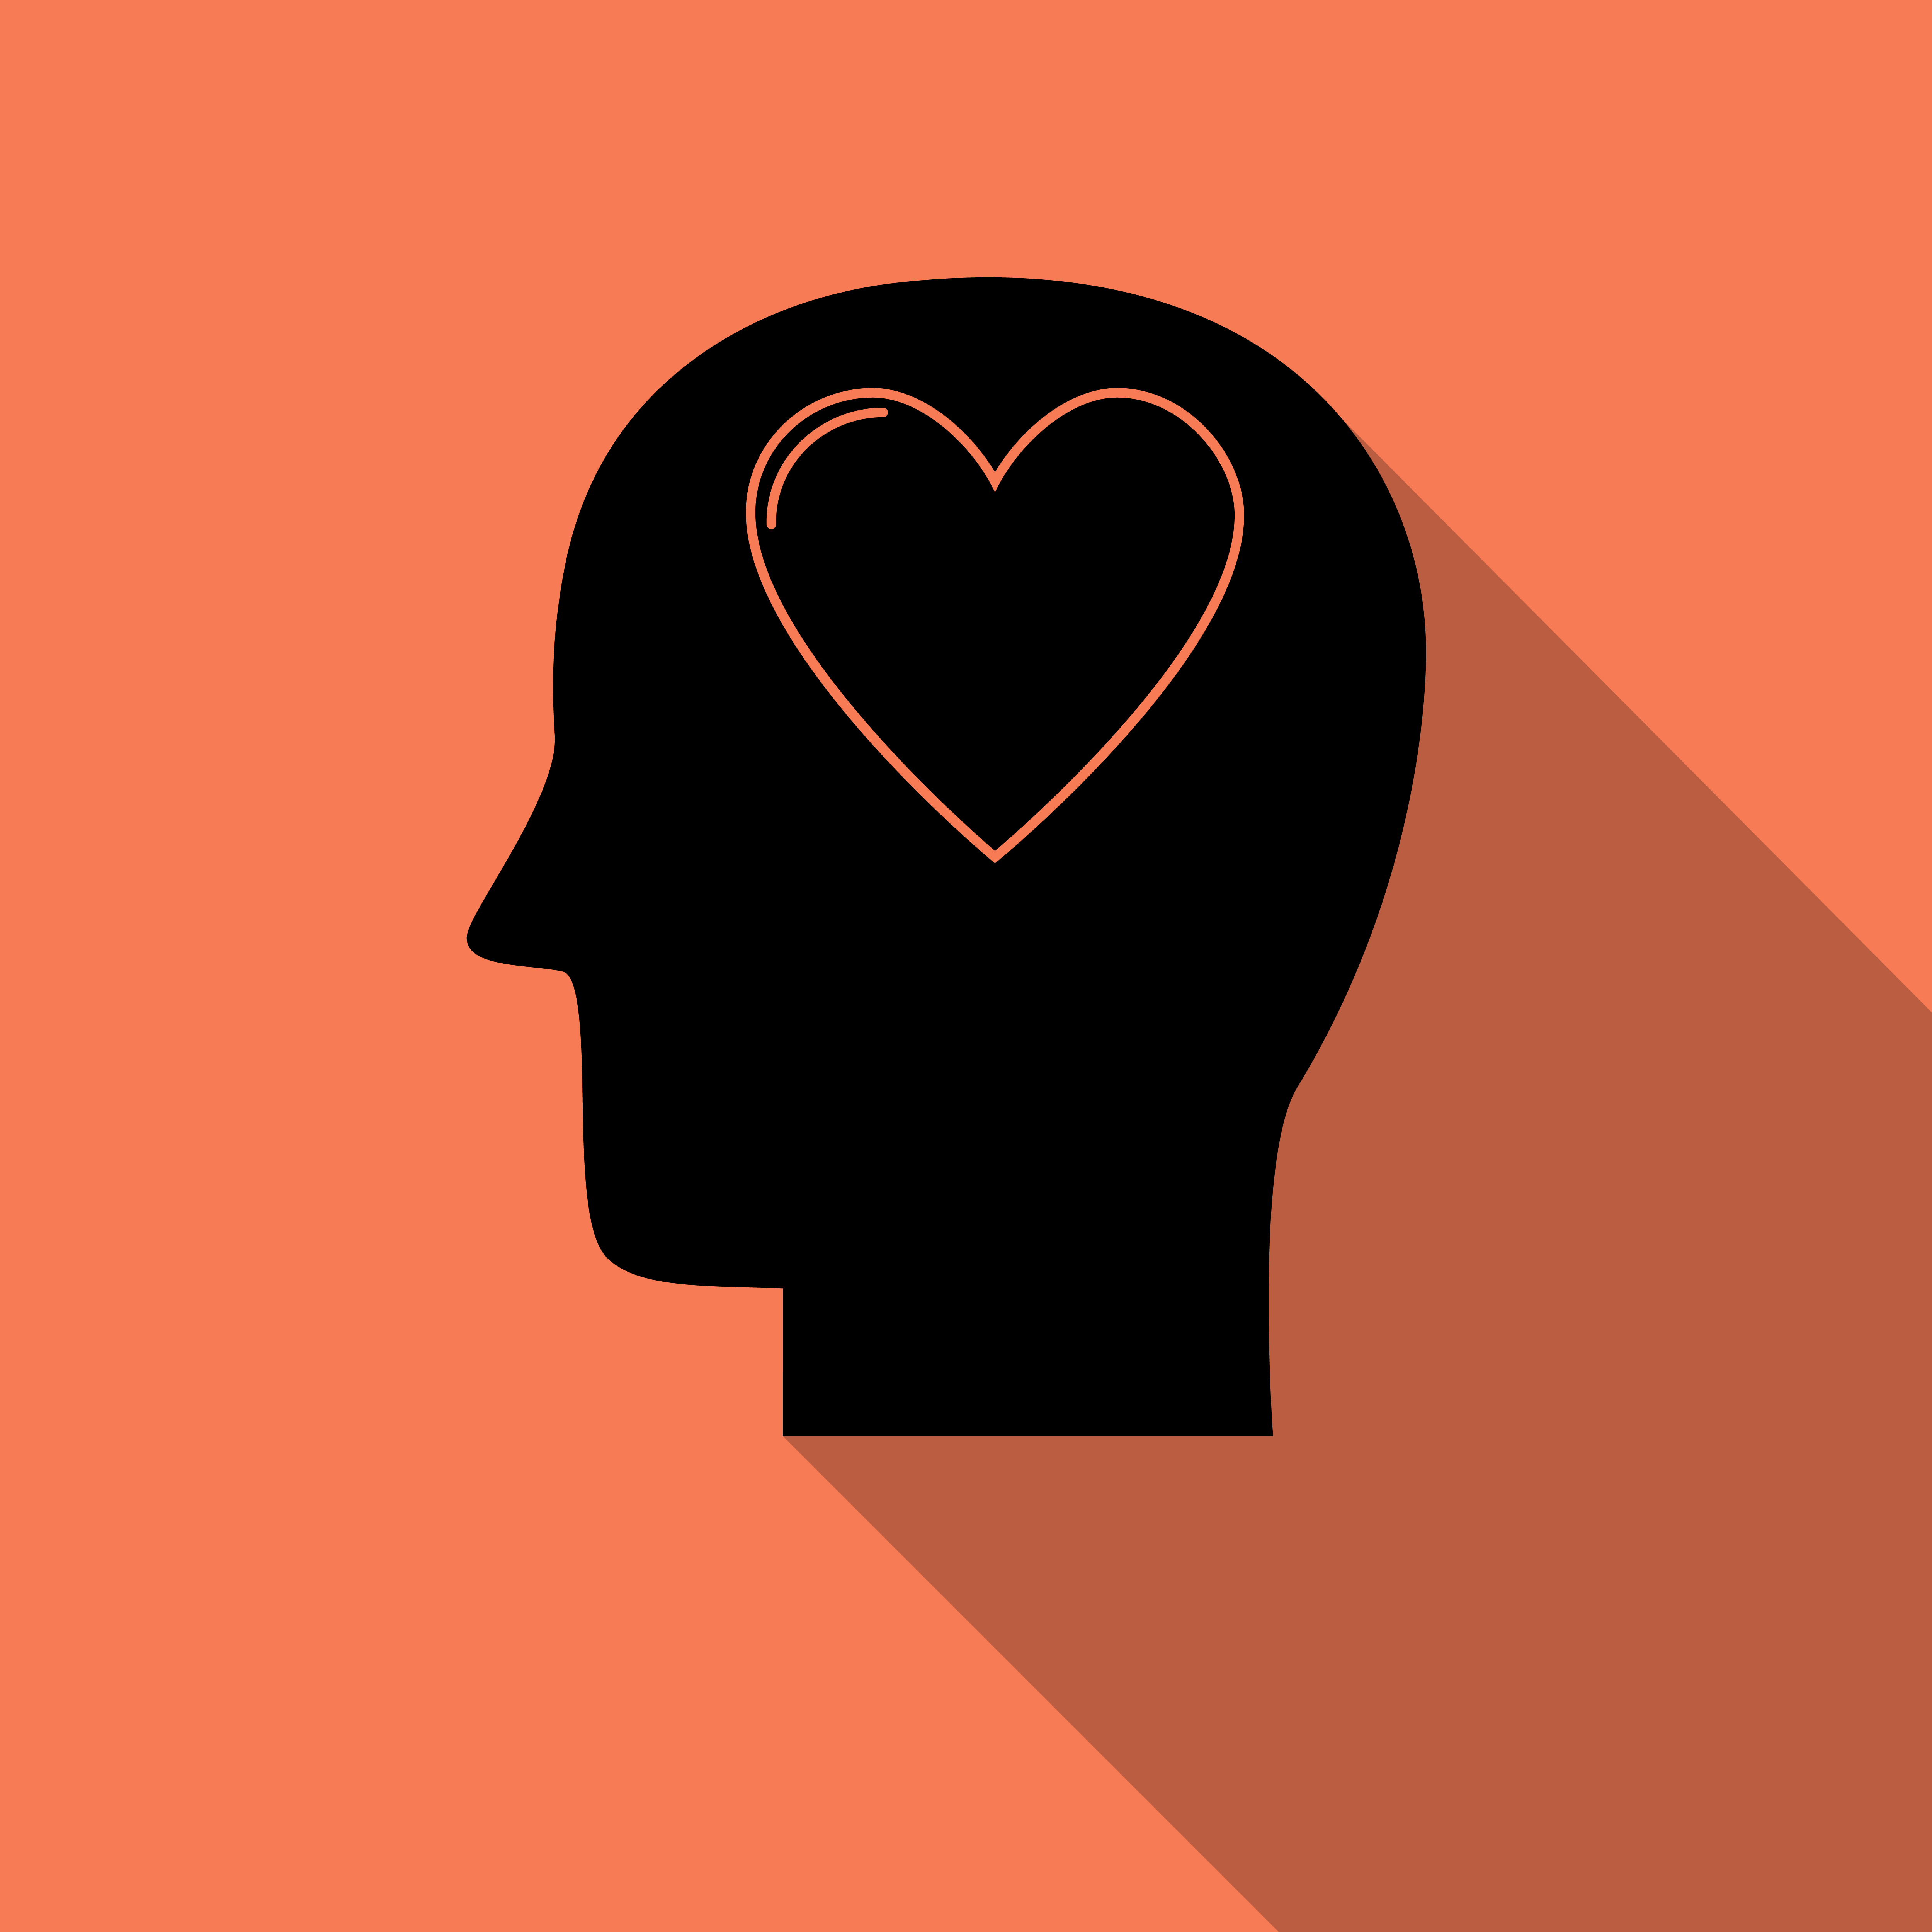 Human head with heart icon ,love symbol with long shadow